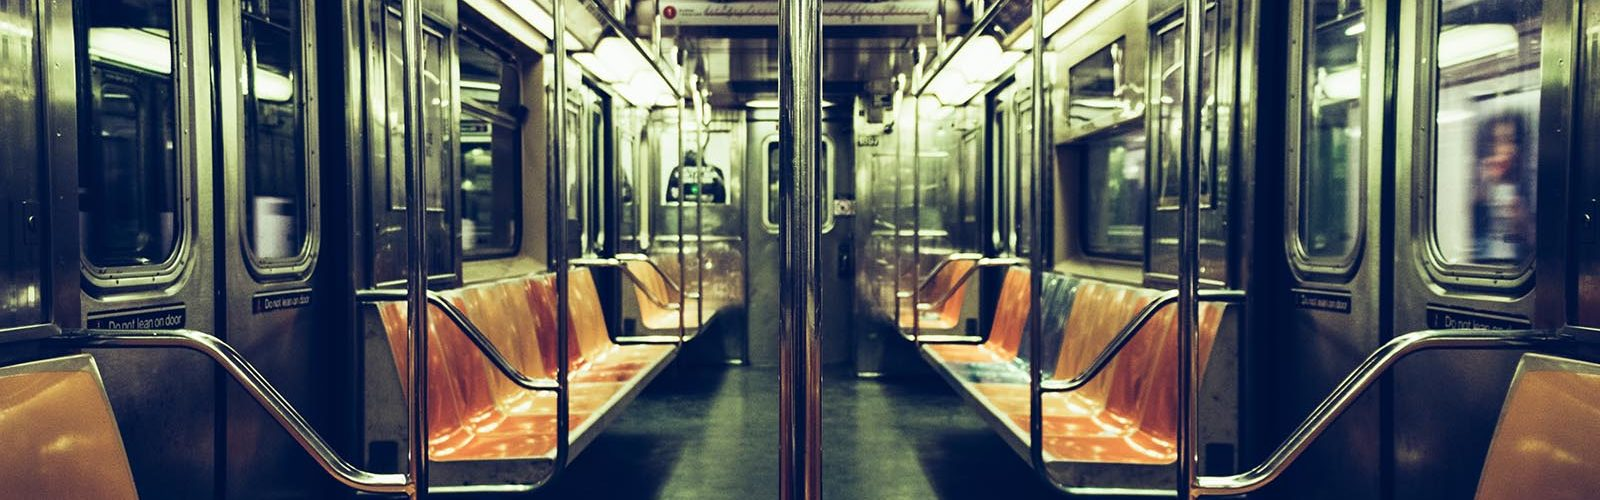 new-york-transit-museum-article